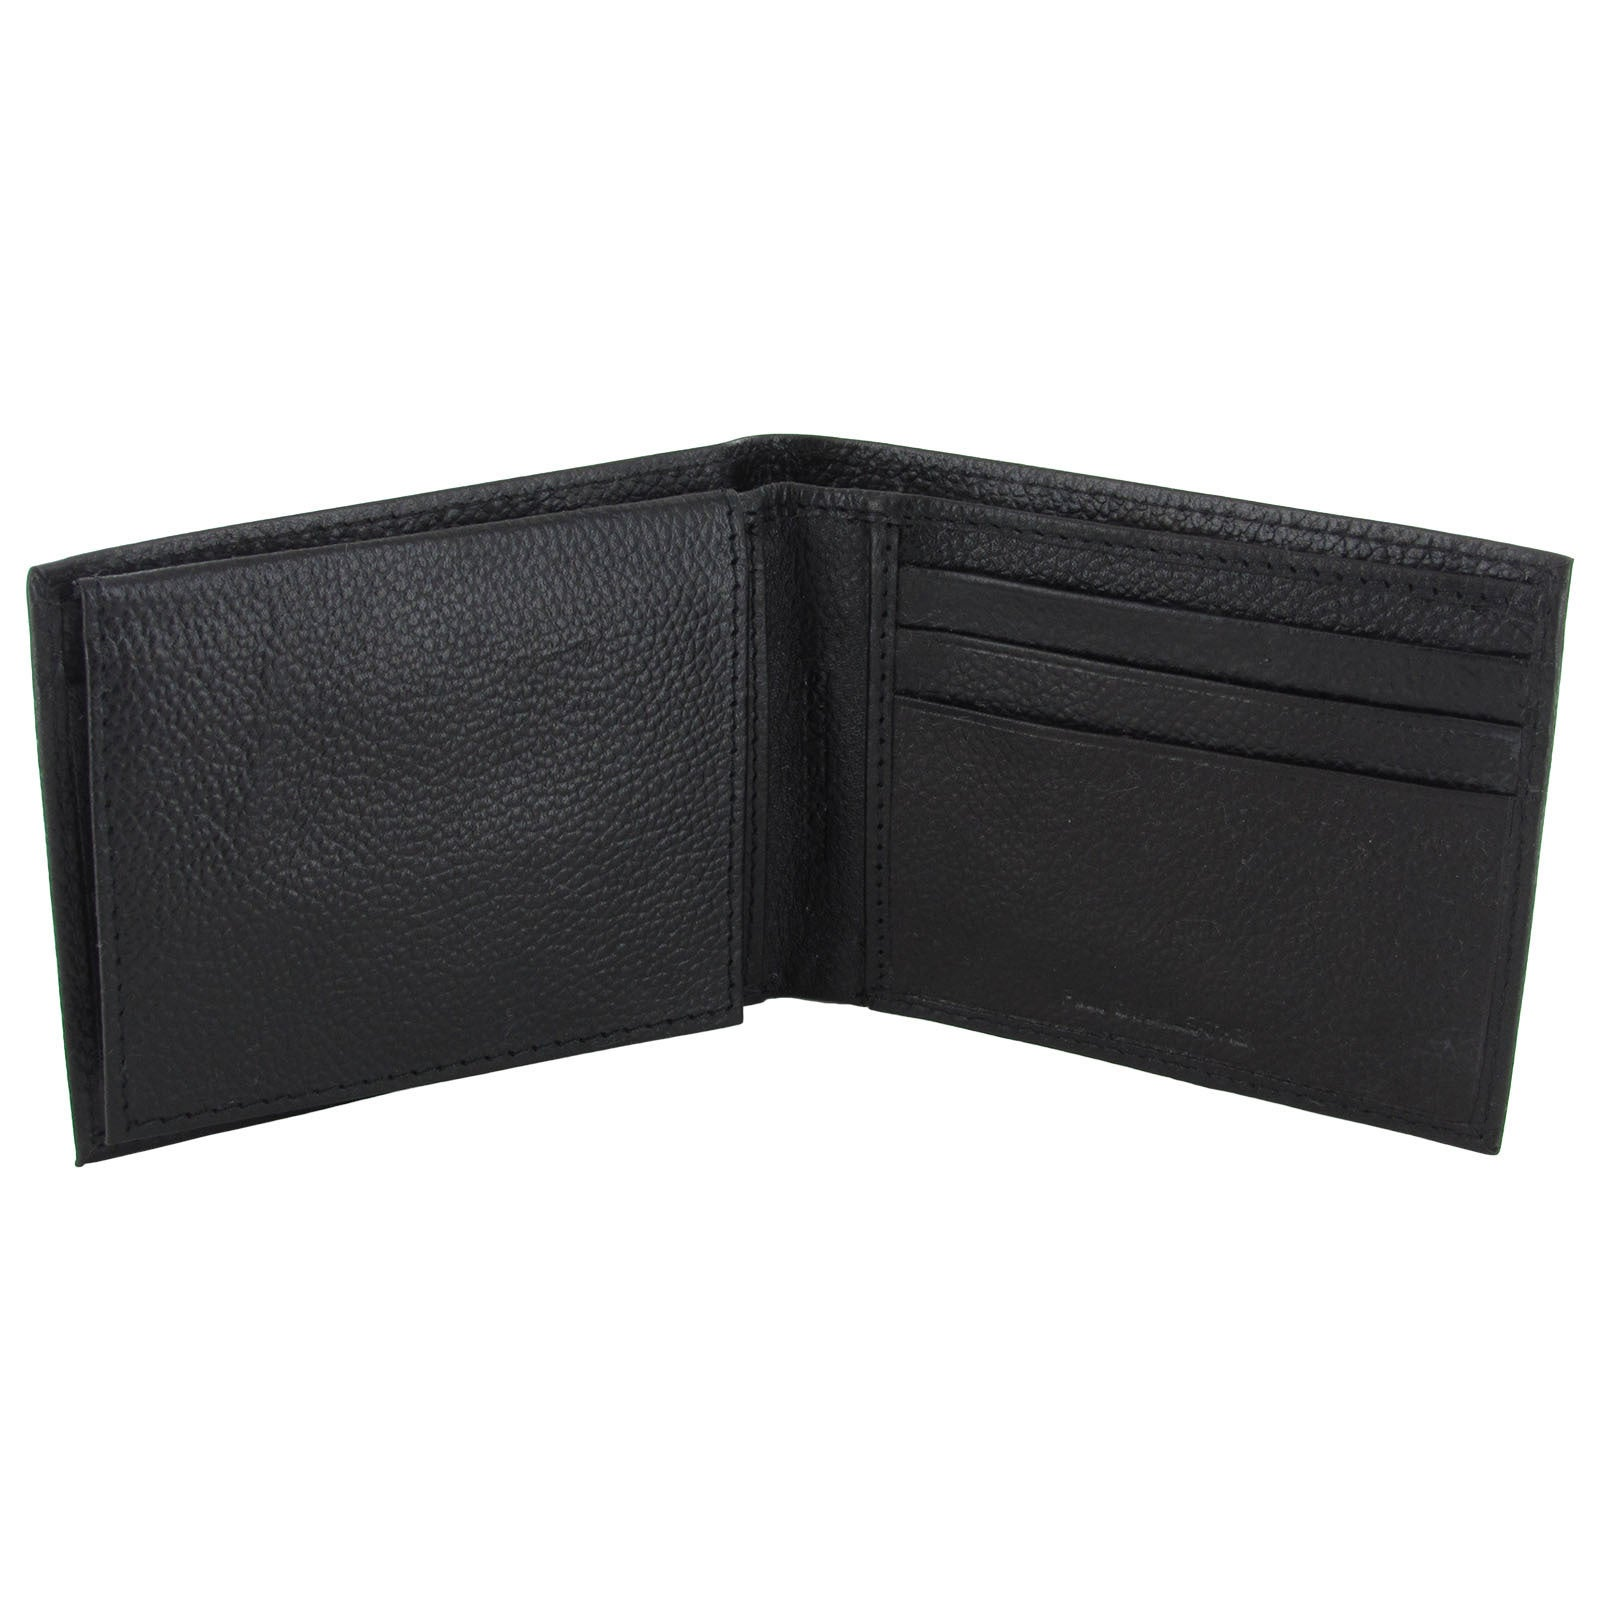 6d00096e684c Shop Michael Kors Mens 2930327 Passcase Wallet - Free Shipping On Orders  Over $45 - Overstock - 10555329